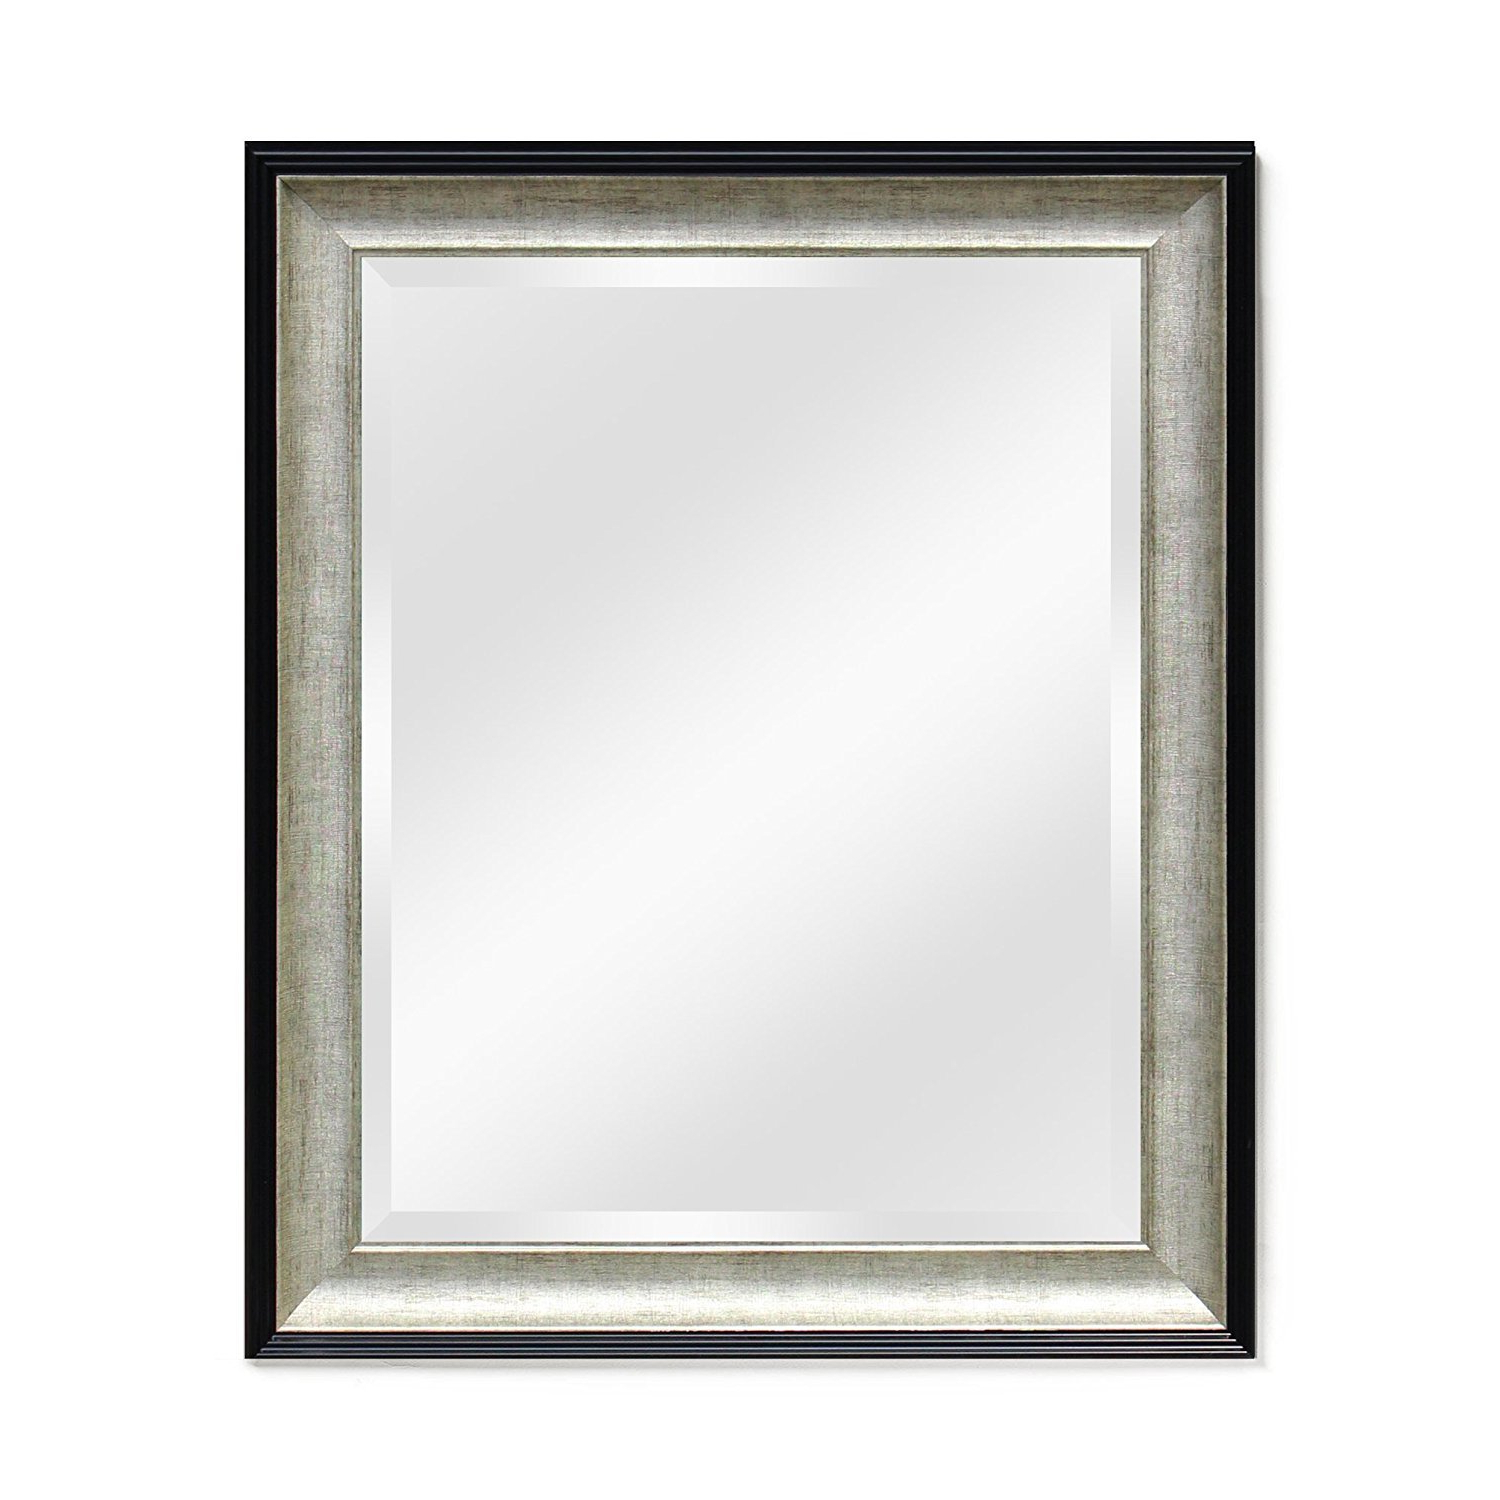 Entryway Wall Mirrors Regarding Current Wall Mirror – For Entryway Or Bathroom Wall Mounted Black Mirrors Ecohome (26X32, Black/silver) (View 7 of 20)